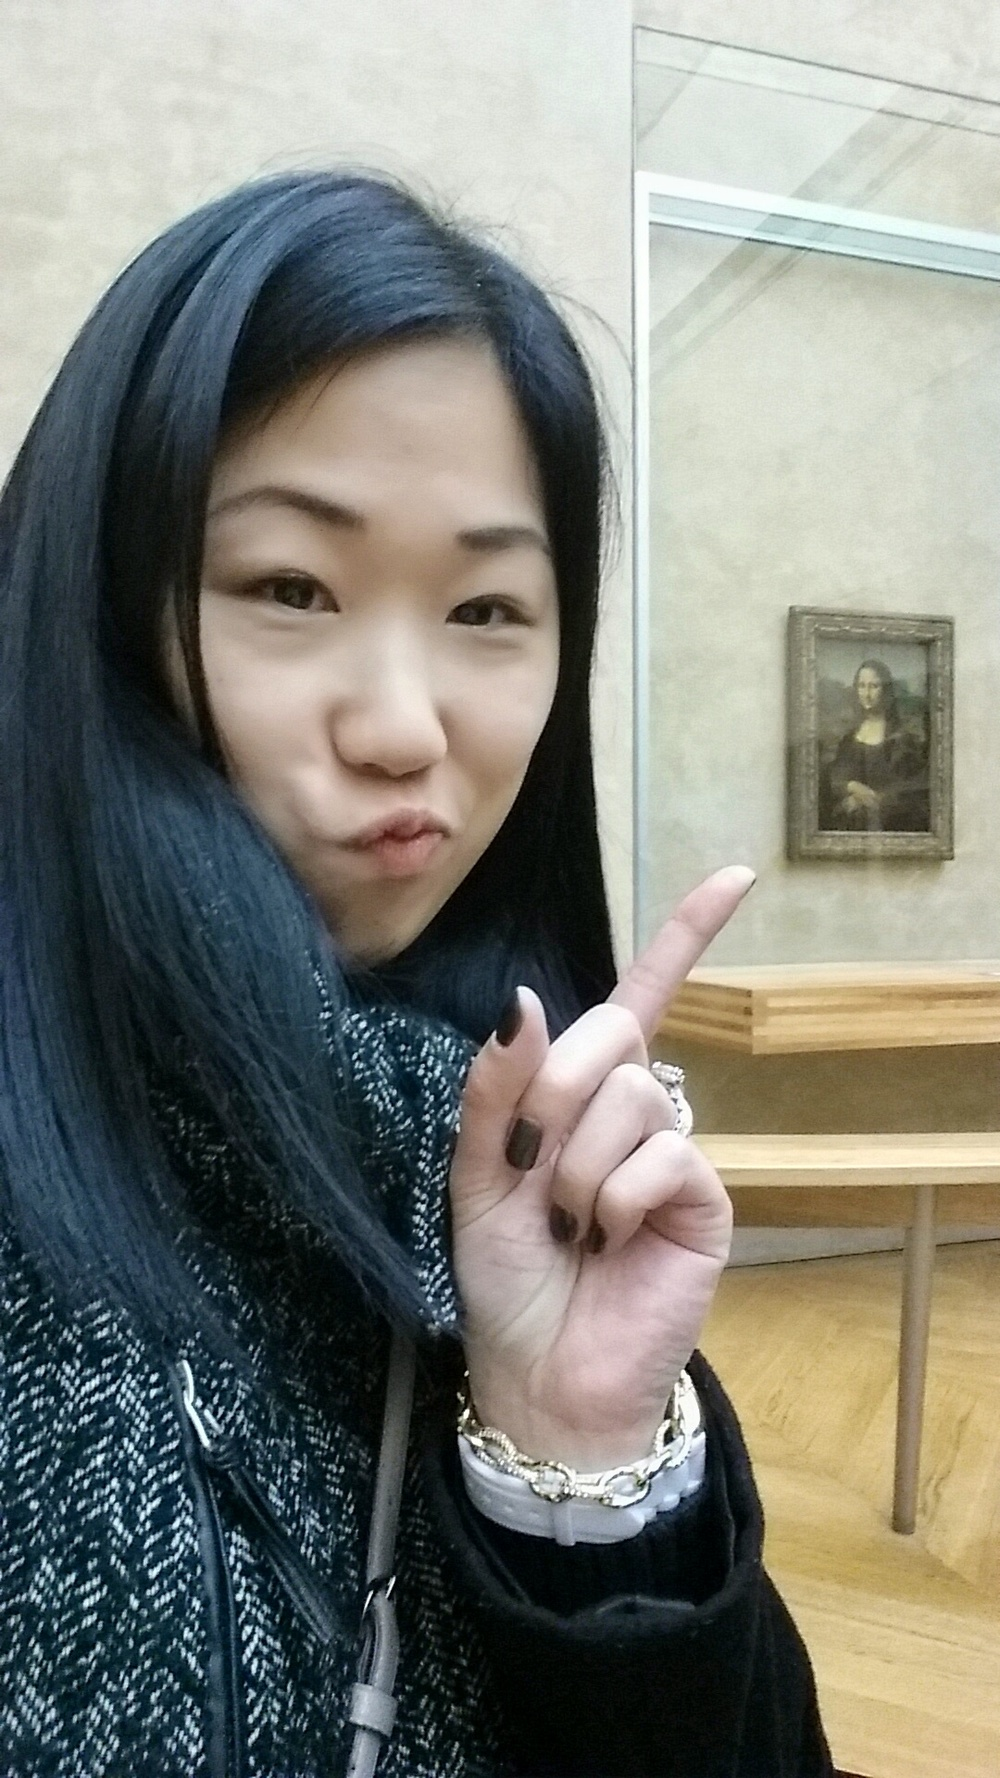 Who? That? Oh, that's just ma gurl, Mona.